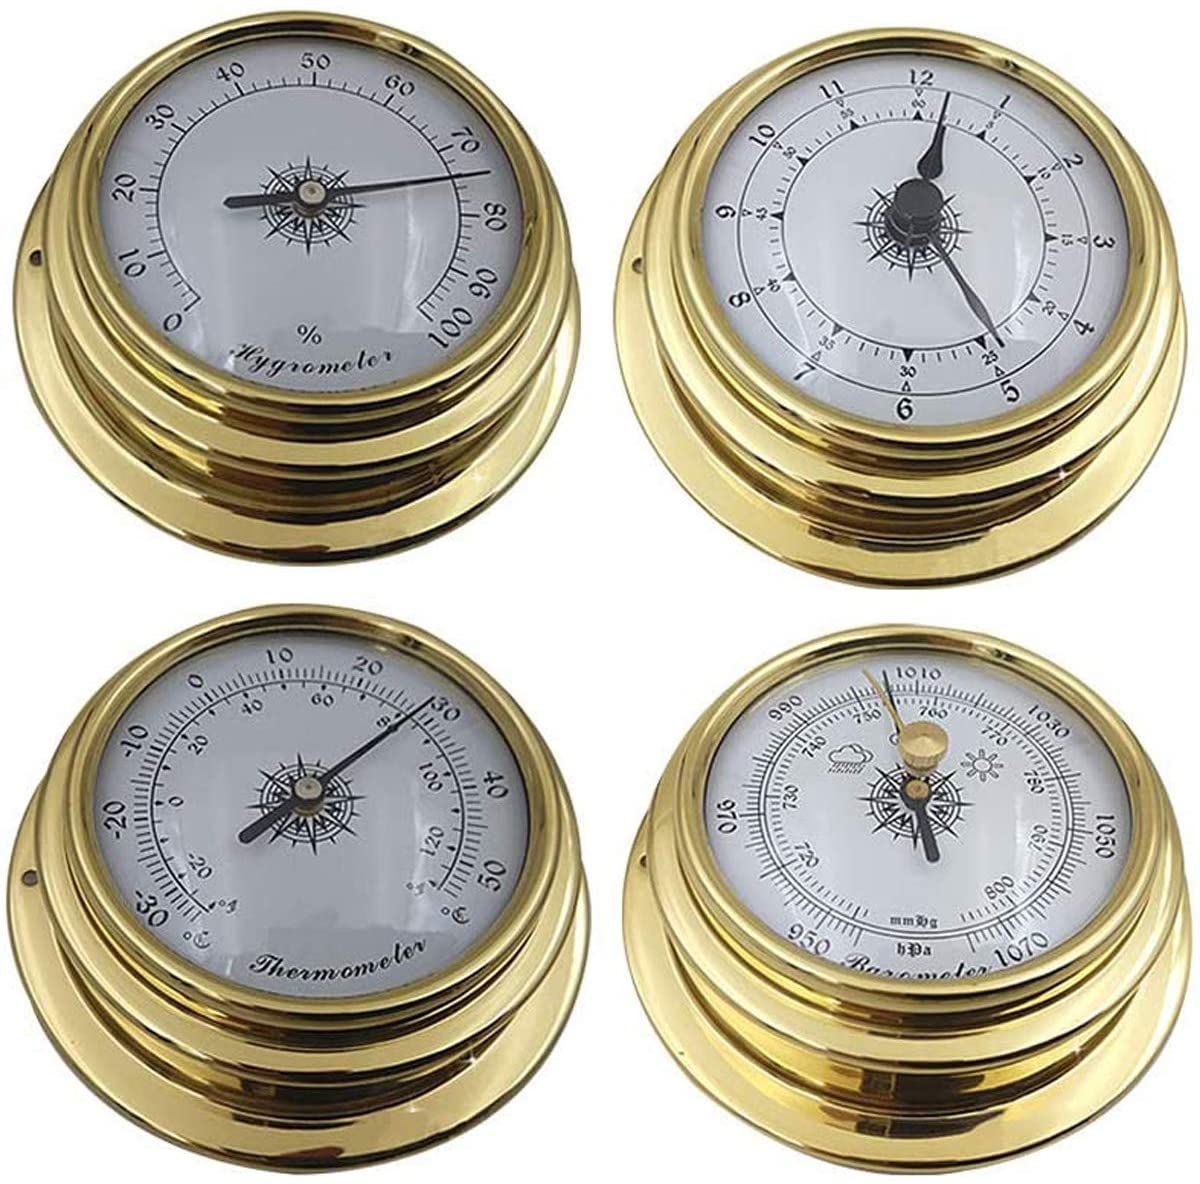 Siunwdiy Weather Station Barometer,Clock Set, 4Pcs Thermometer Hygrometer Kit, Wall Mounted, with Brass Casing Plastic Bottom Case,Brass,4pcs